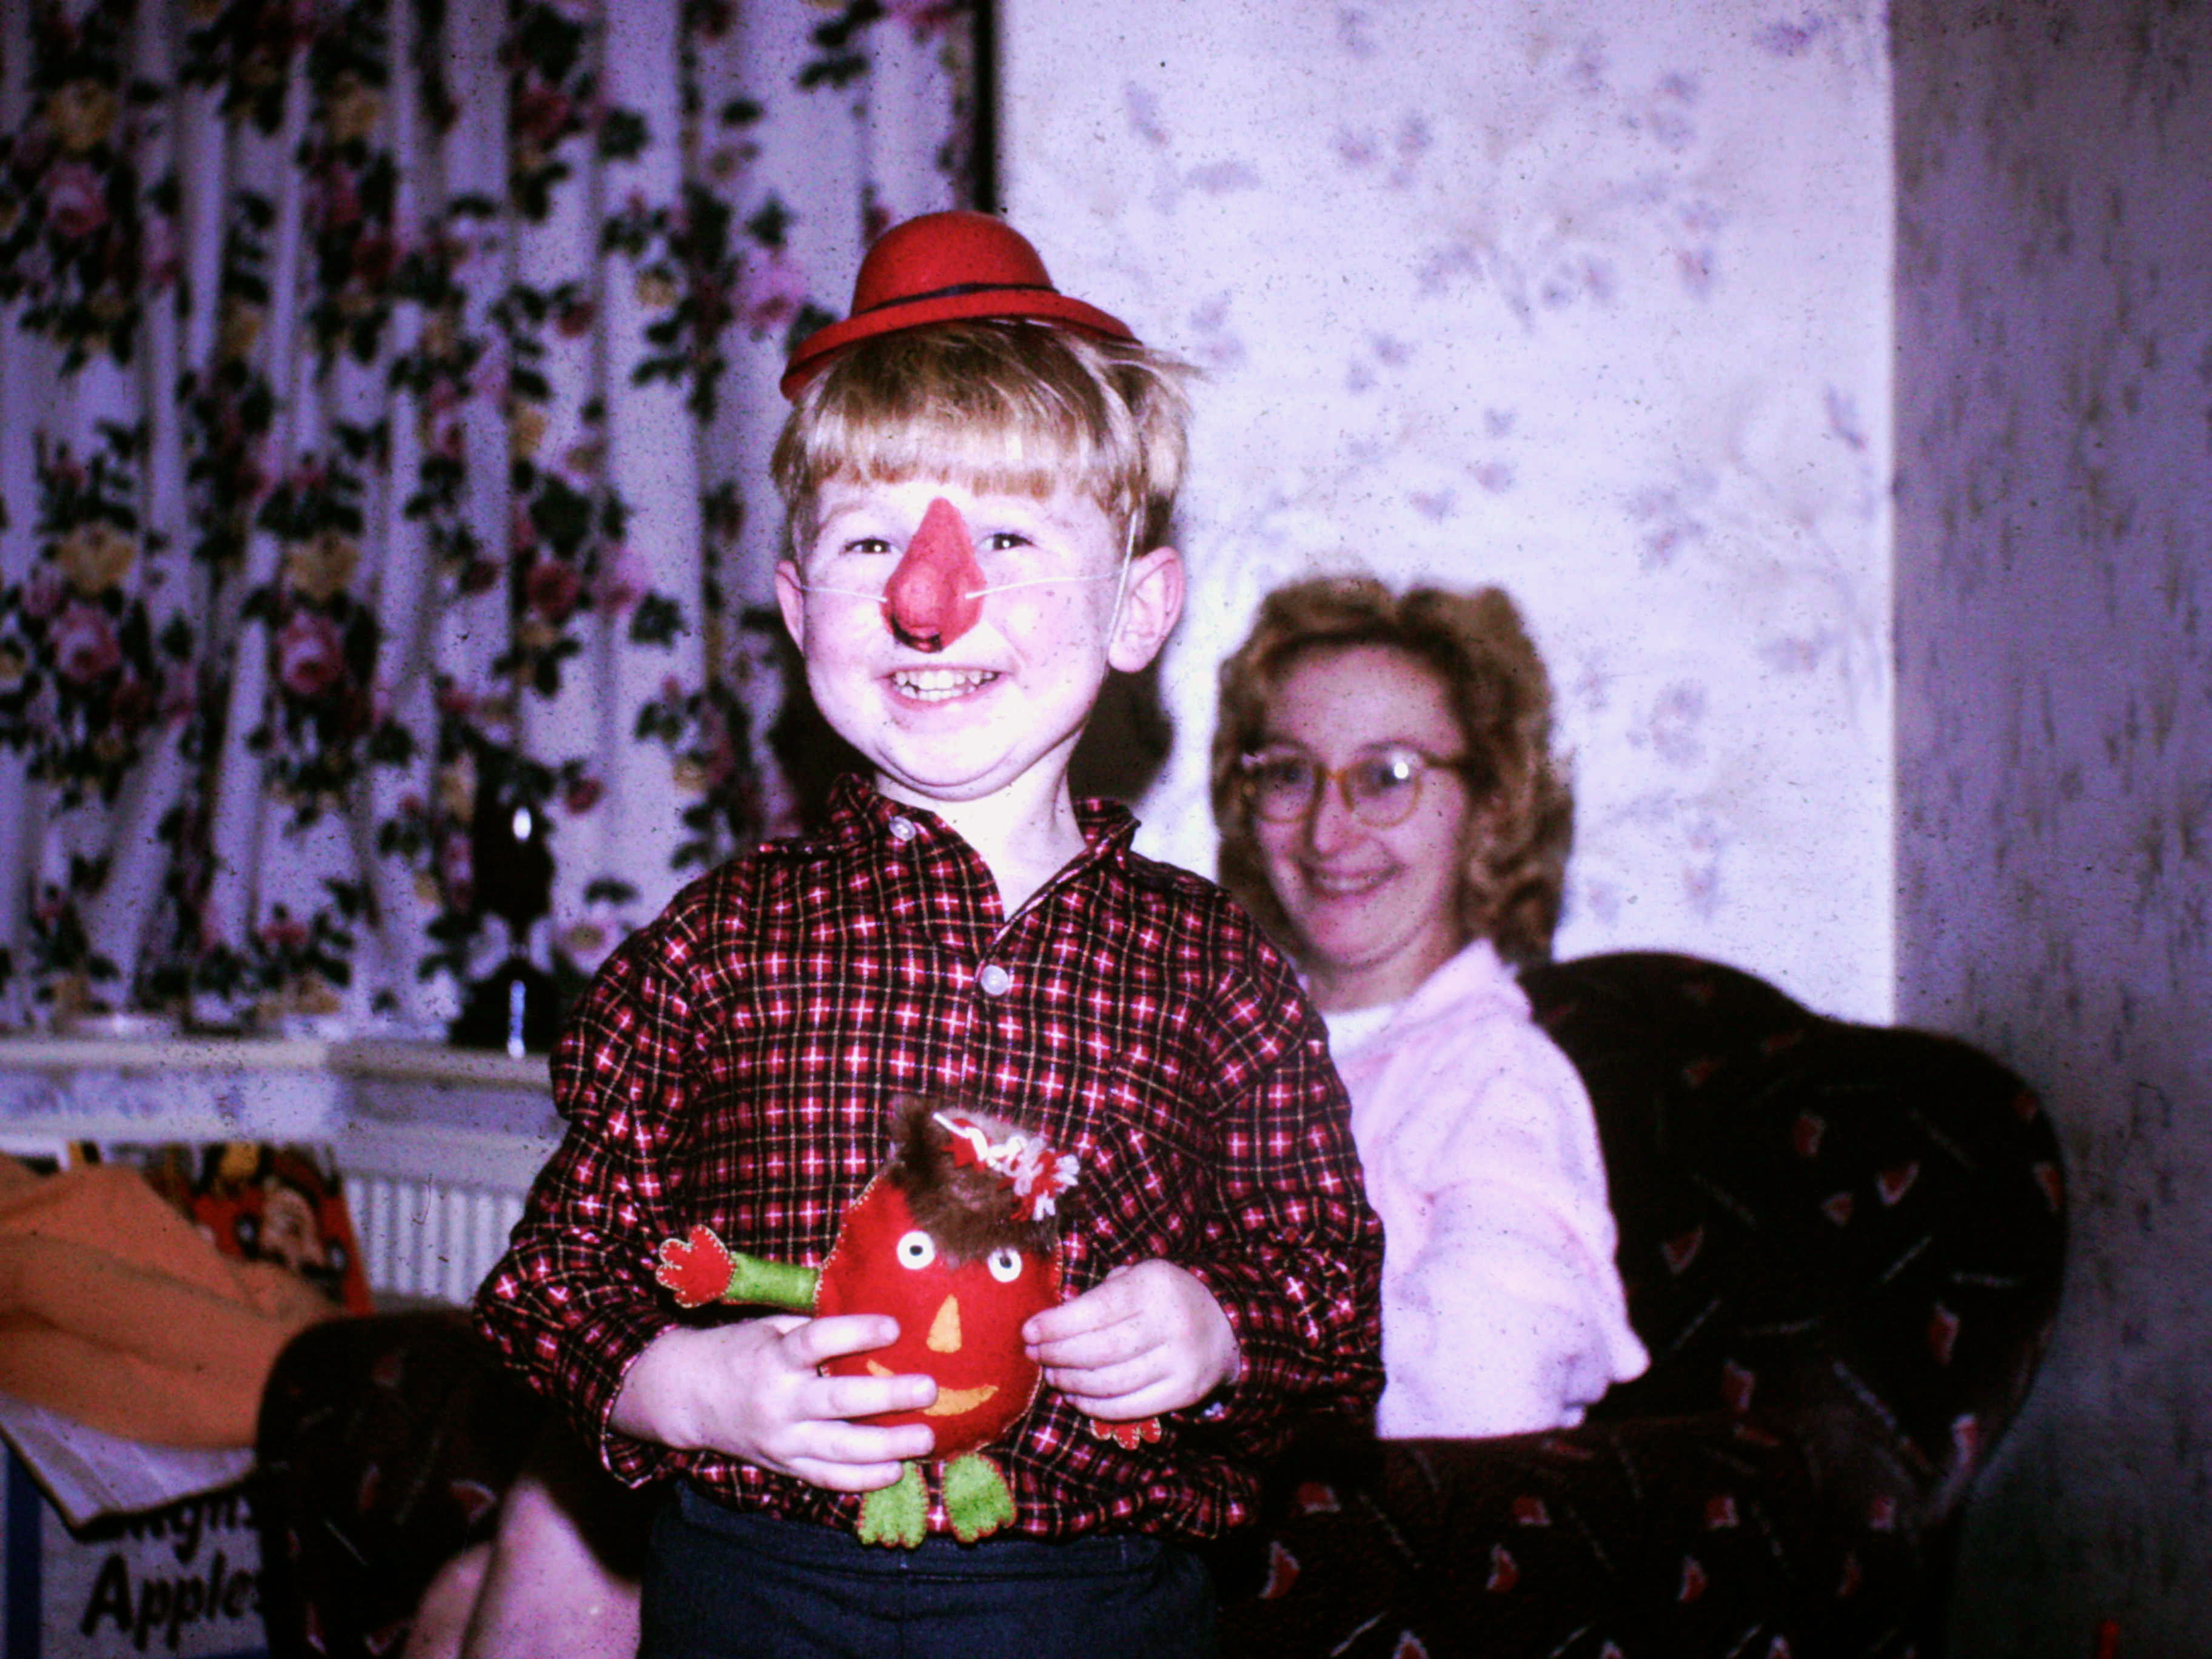 Image of Vince Poynter stood, wearing a small hat and large red nose, holding a gonk, with Lilian Poynter sat in the background